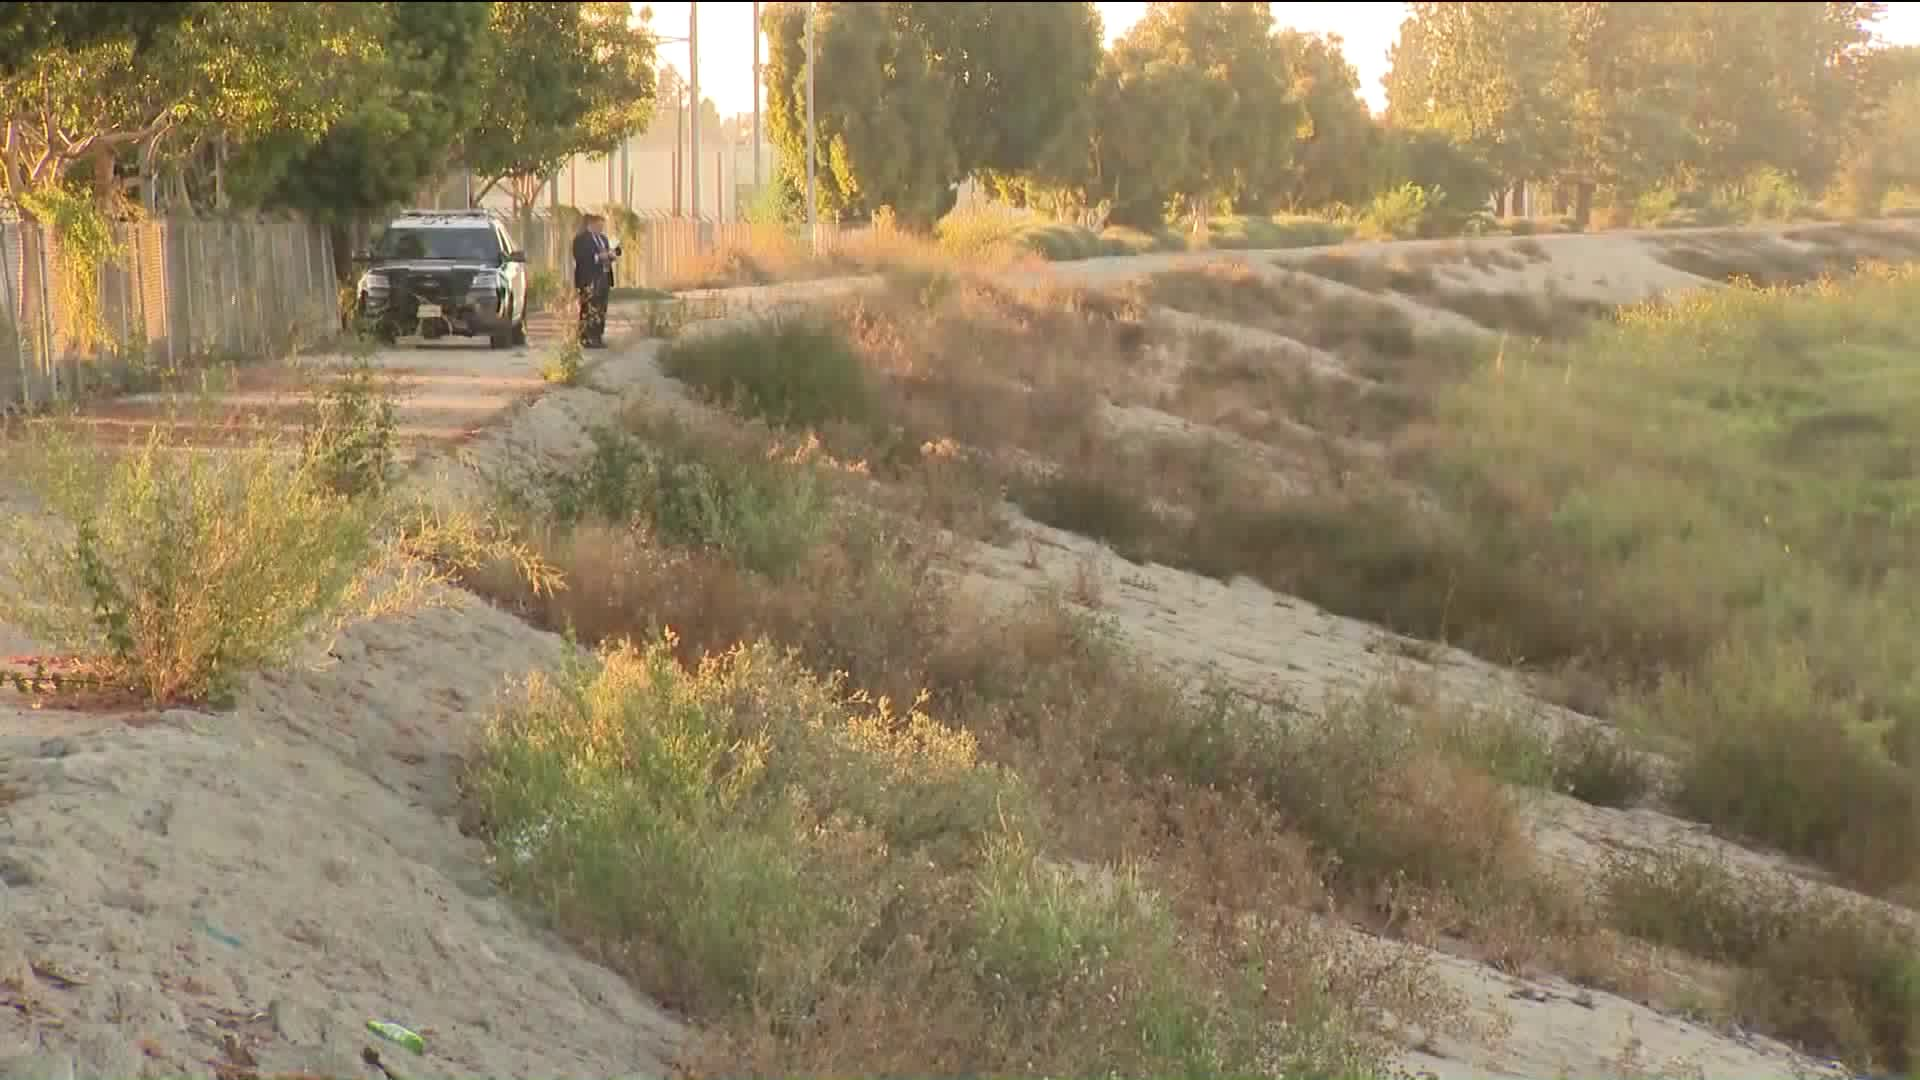 Human remains were found on Aug. 11, 2020, near a creek bed located on the 20200 block of South Santa Fe Avenue in Rancho Dominguez. (KTLA)